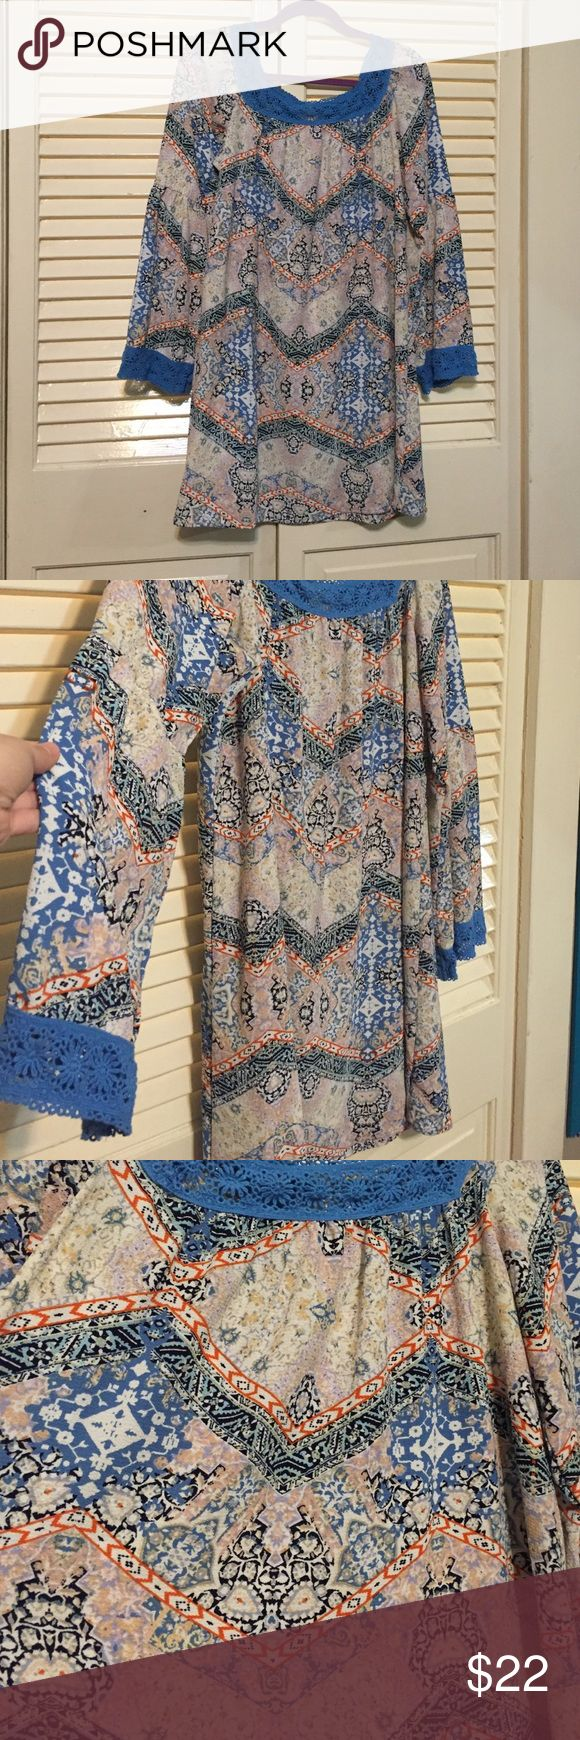 Babydoll style print dress! White blue and orange Chevron/other fun pattern printed baby doll dress! Super soft material, almost silky feeling! Adorable blue trim around neck and belled out sleeves! Dresses